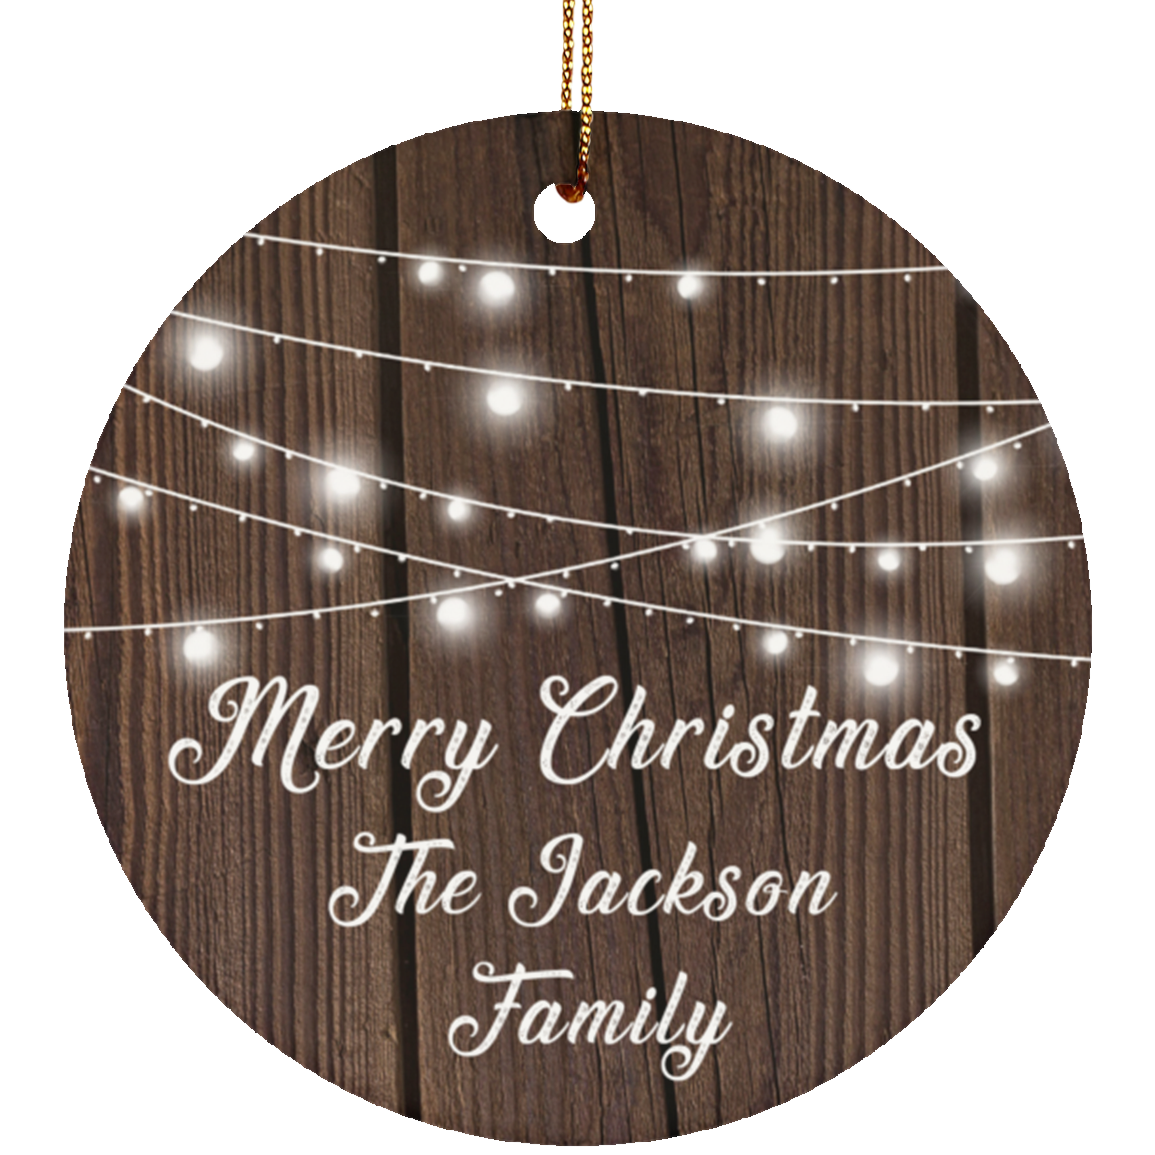 Merry Christmas The Jackson Family - Circle Ornament